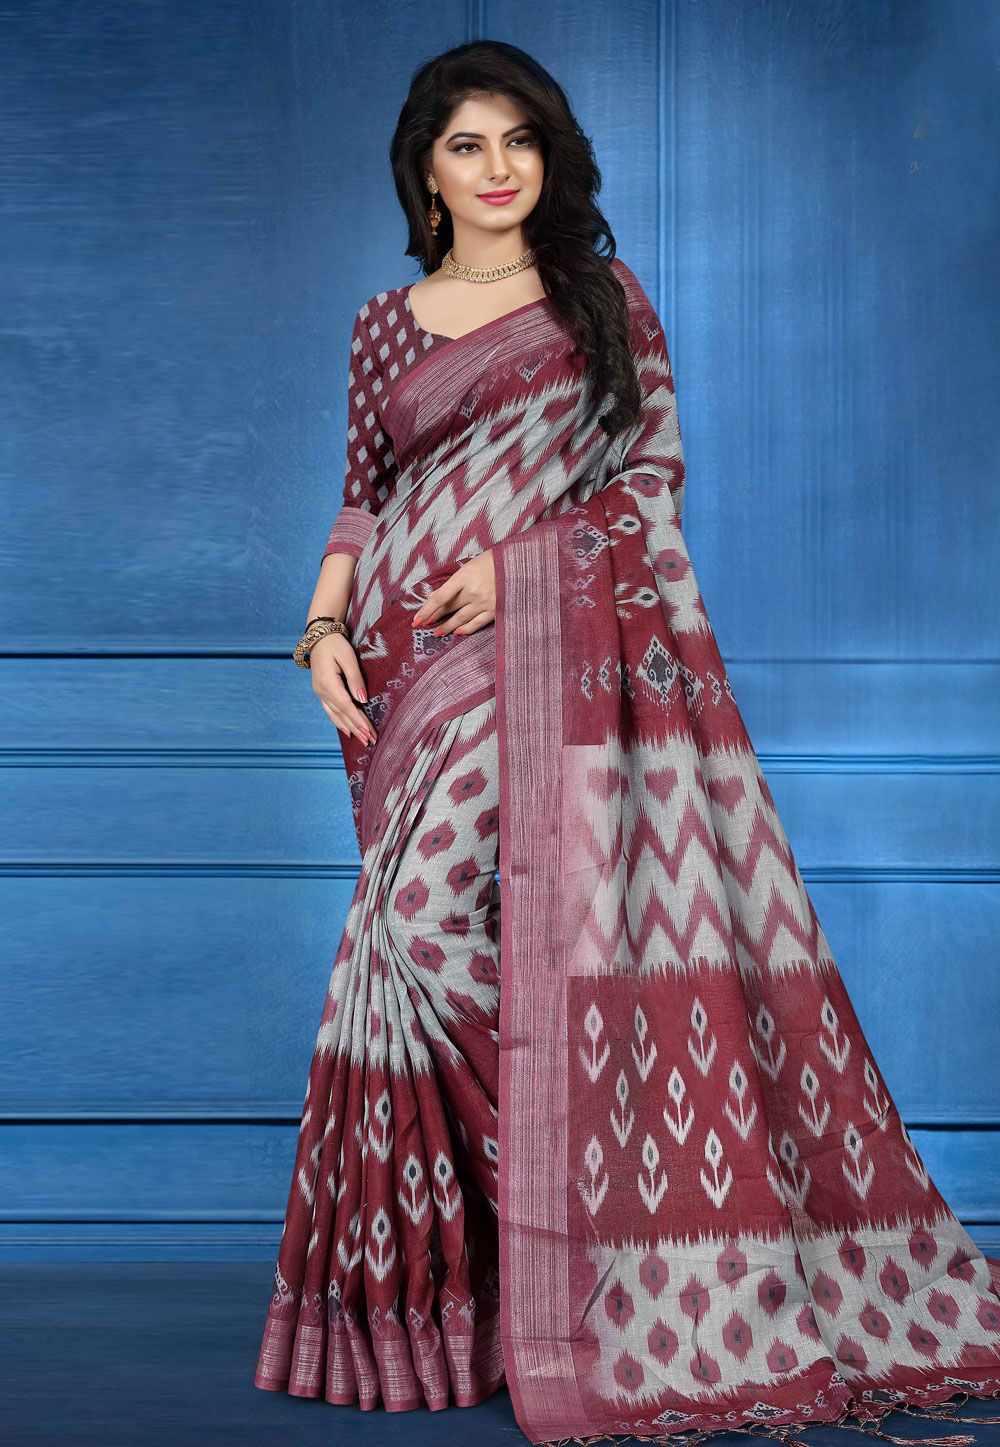 82fa59afb675c4 Buy Gray Linen Printed Festival Wear Saree 161581 with blouse online at  lowest price from vast collection of sarees at Indianclothstore.com.